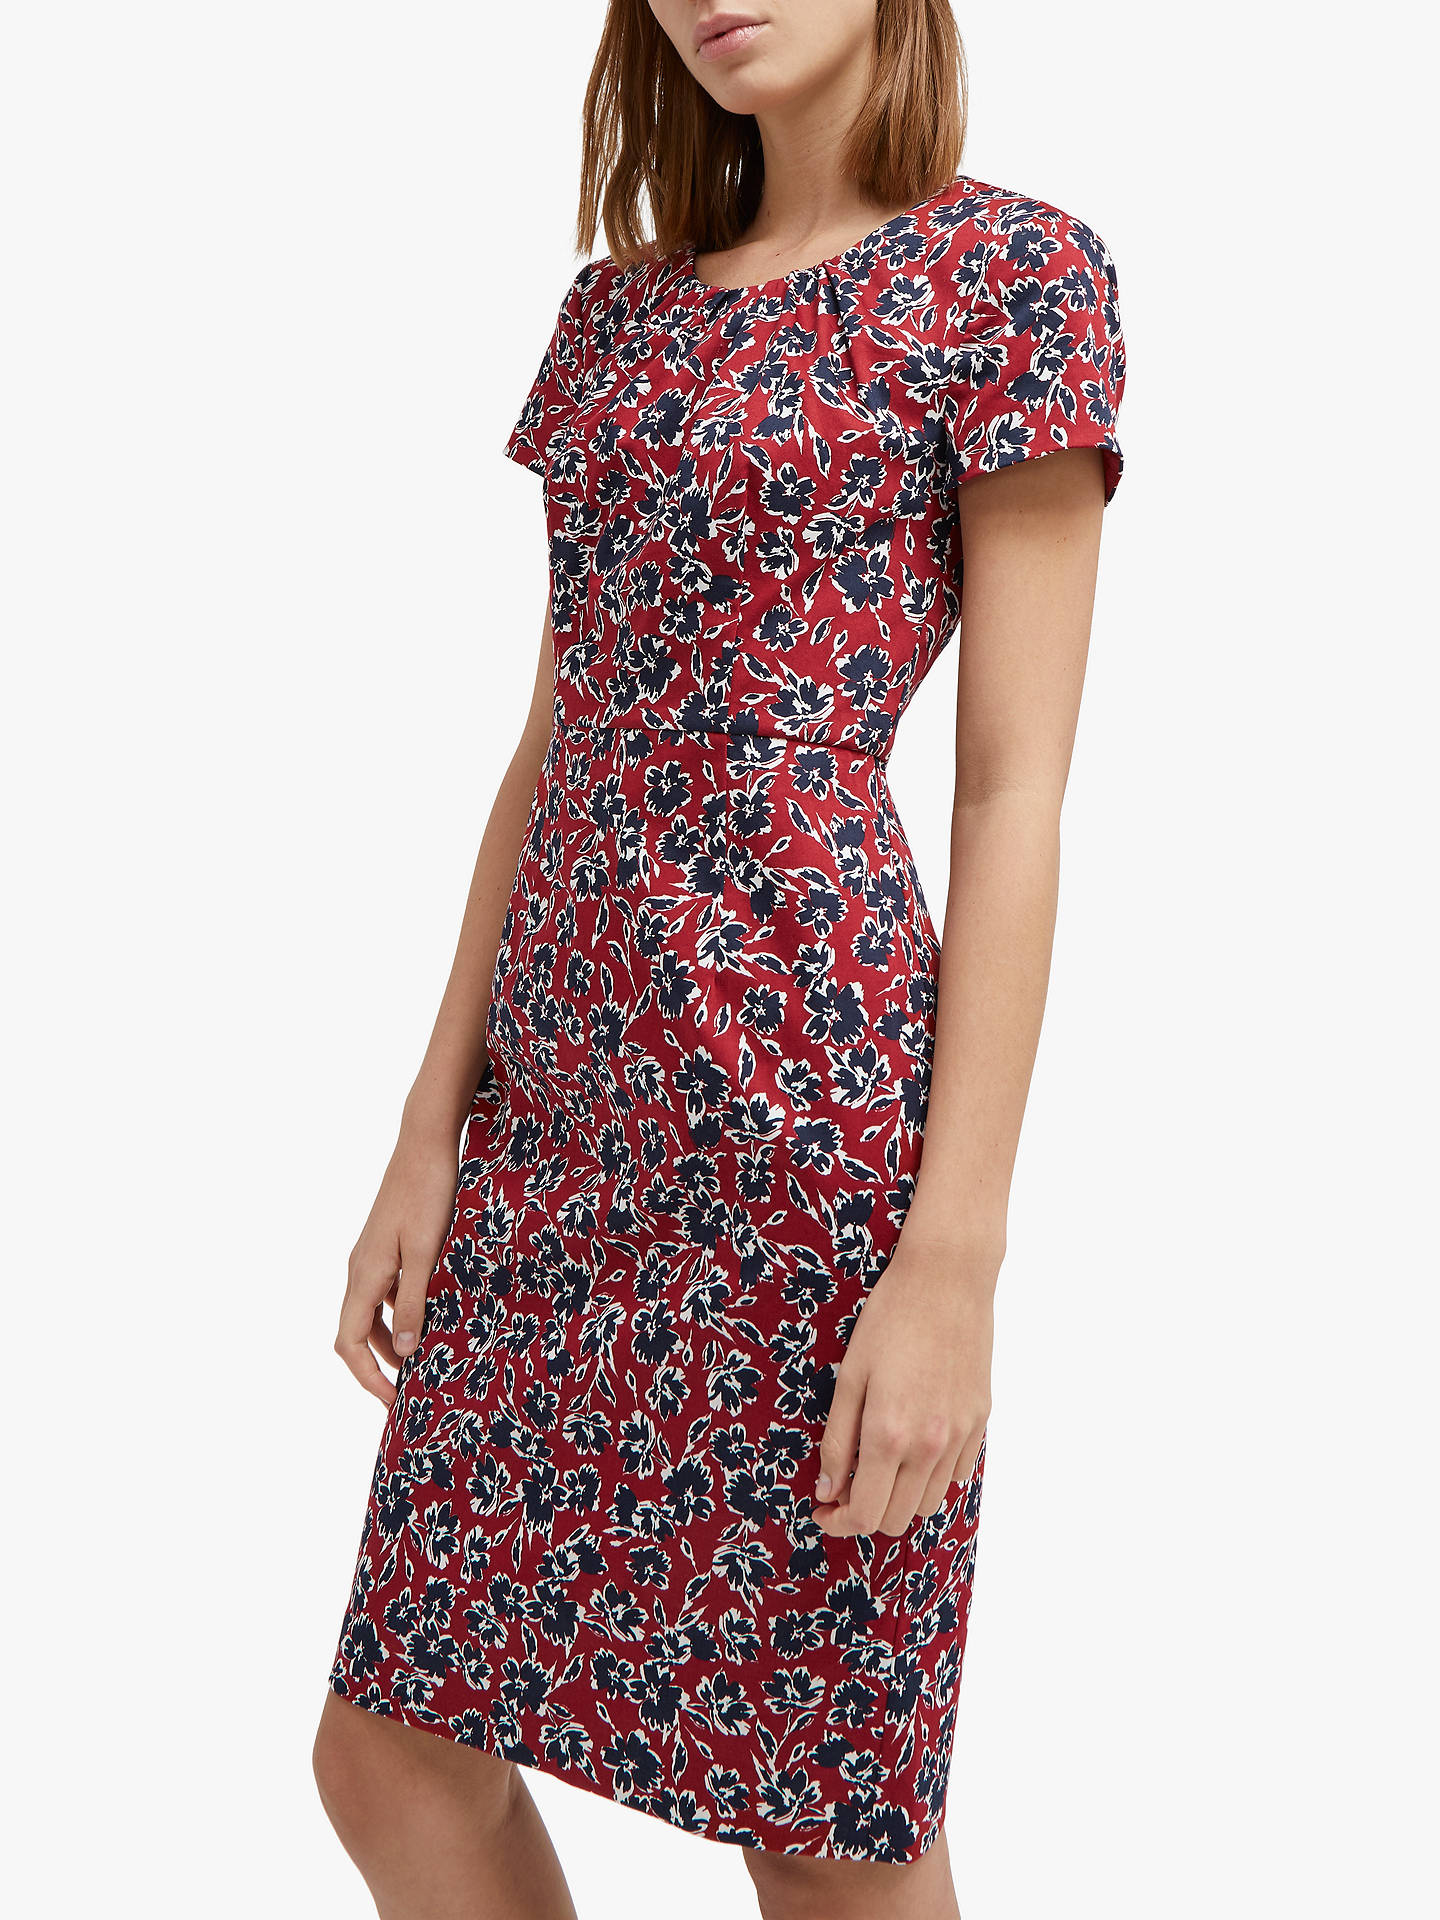 dff7a2191e Buy French Connection Alletea Floral Fitted Dress, Rosso Red/Multi, 6  Online at ...